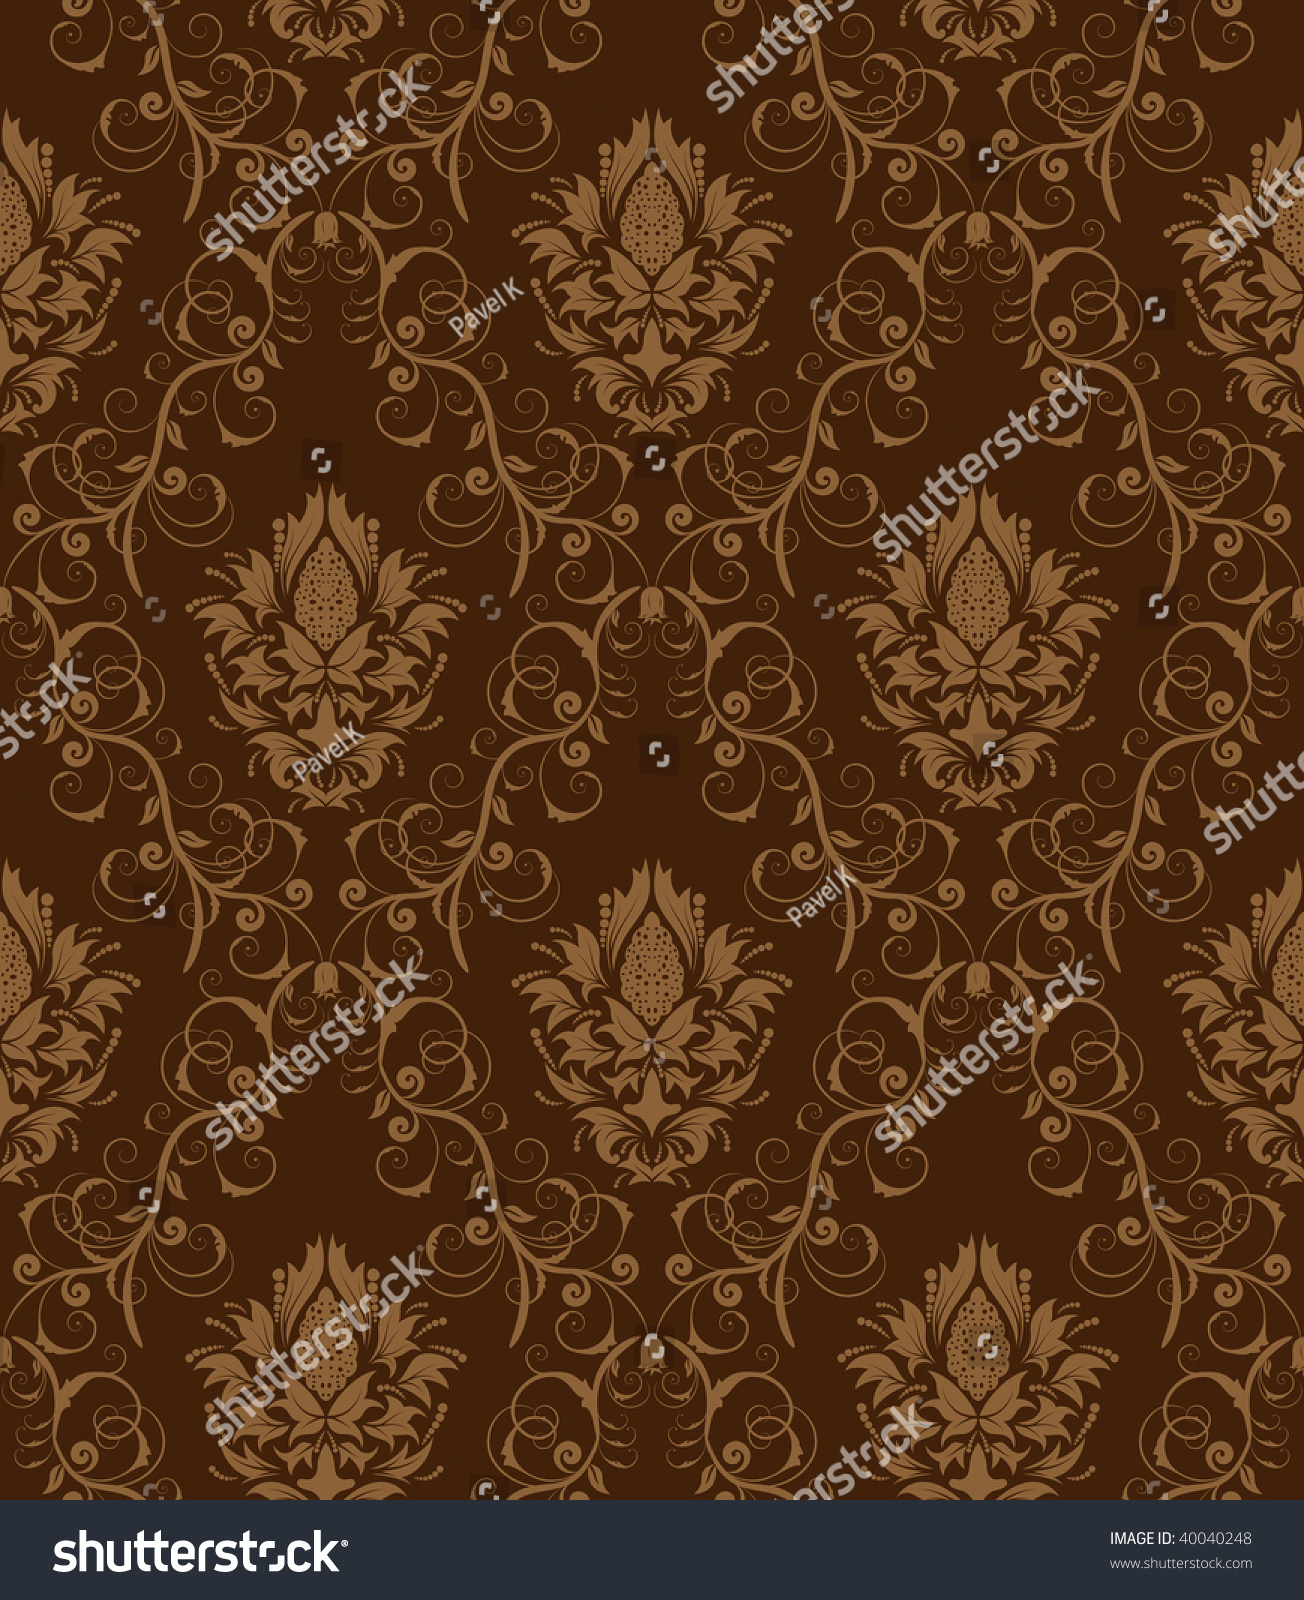 Damask Seamless Vector Background. For Easy Making ...